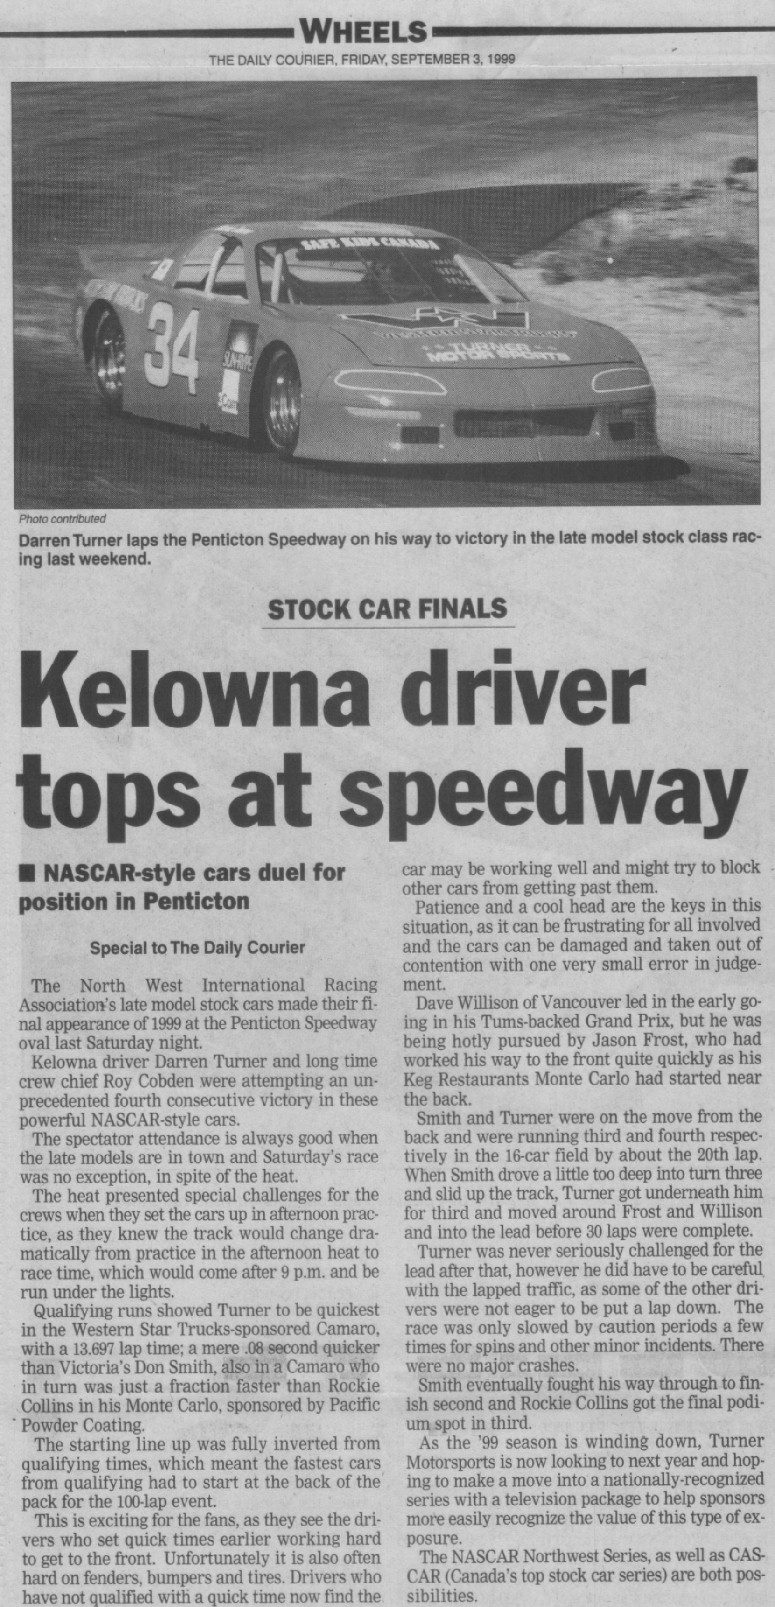 Darren Turner newspaper report of the race